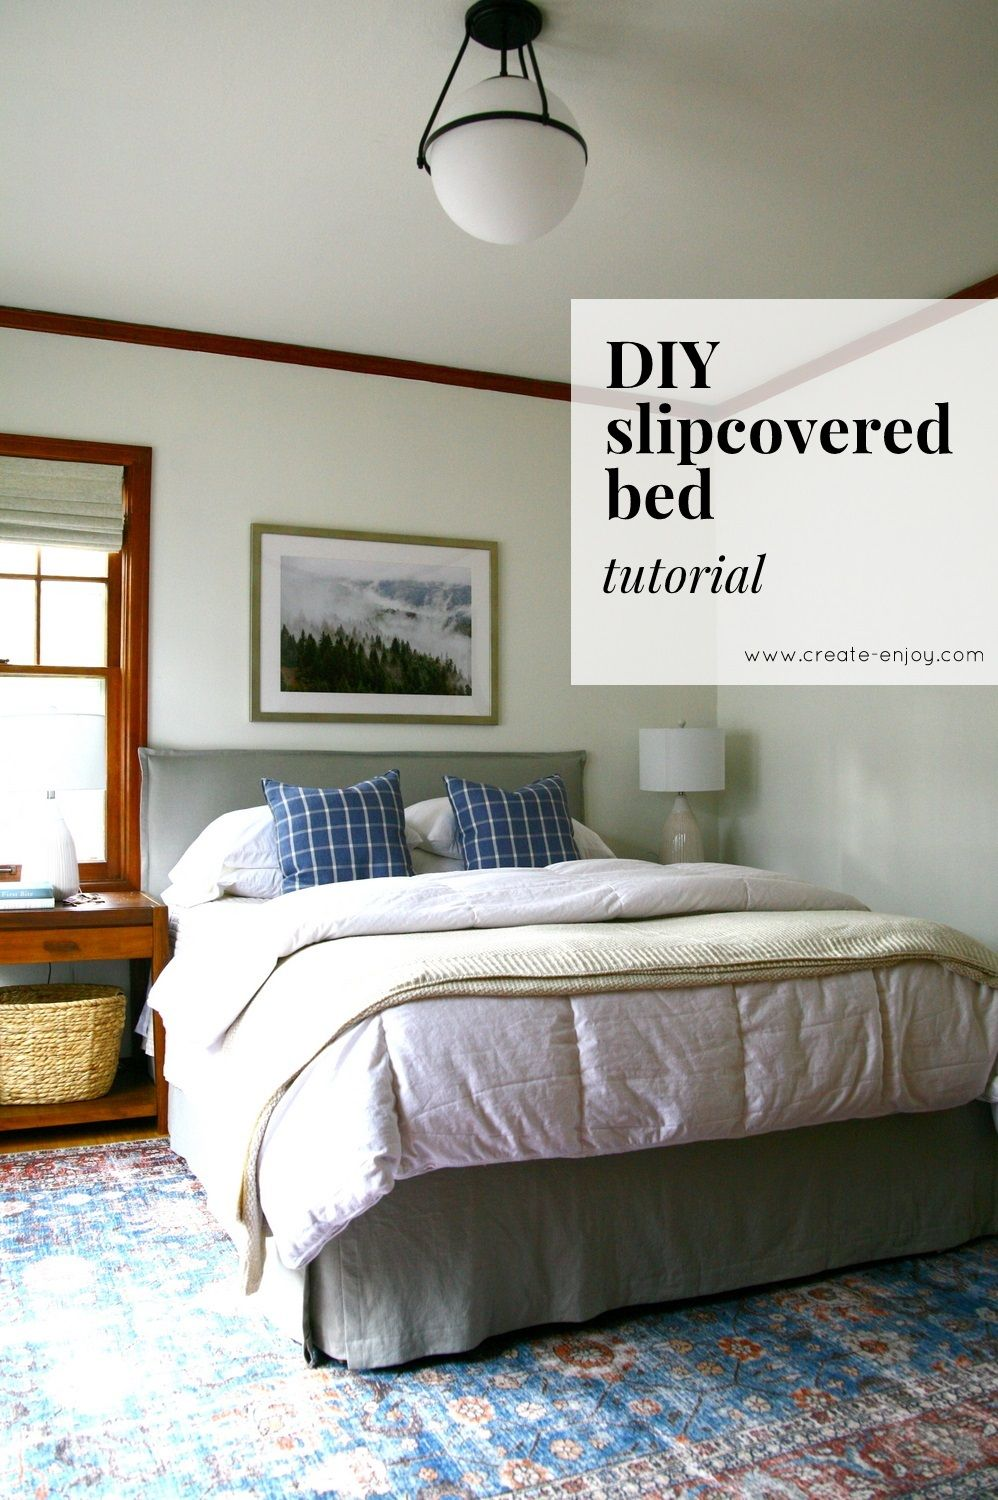 Diy Upholstered Slipcovered Bed Tutorial Slipcovers Diy